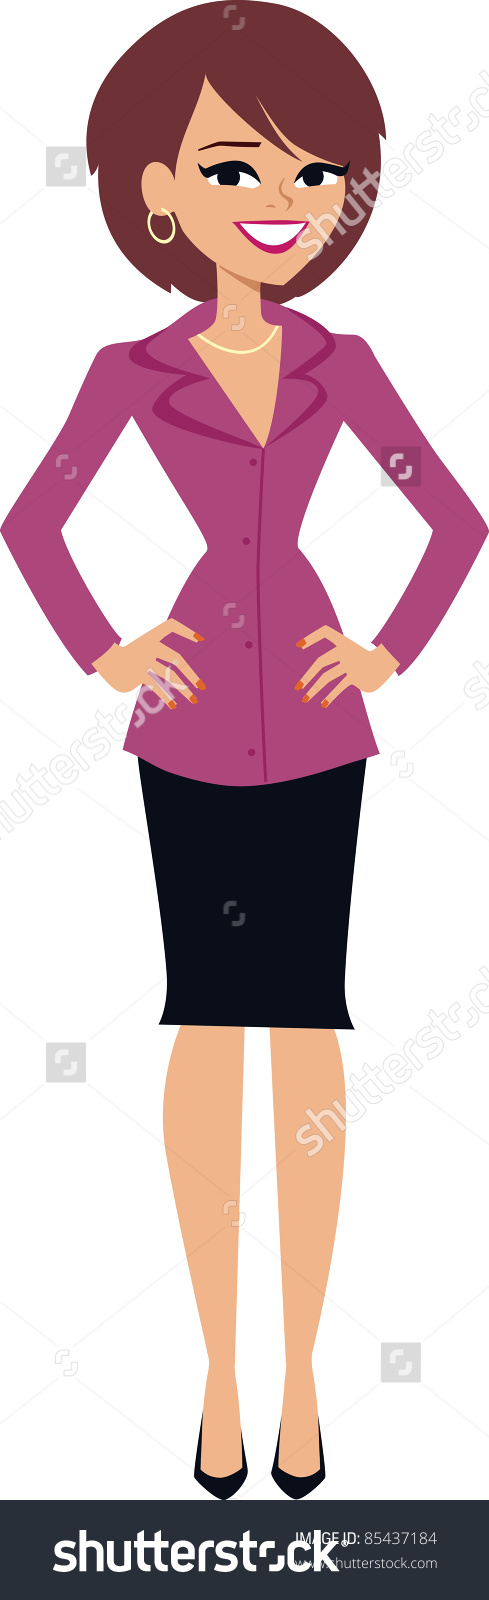 clip art lady standing - clipground